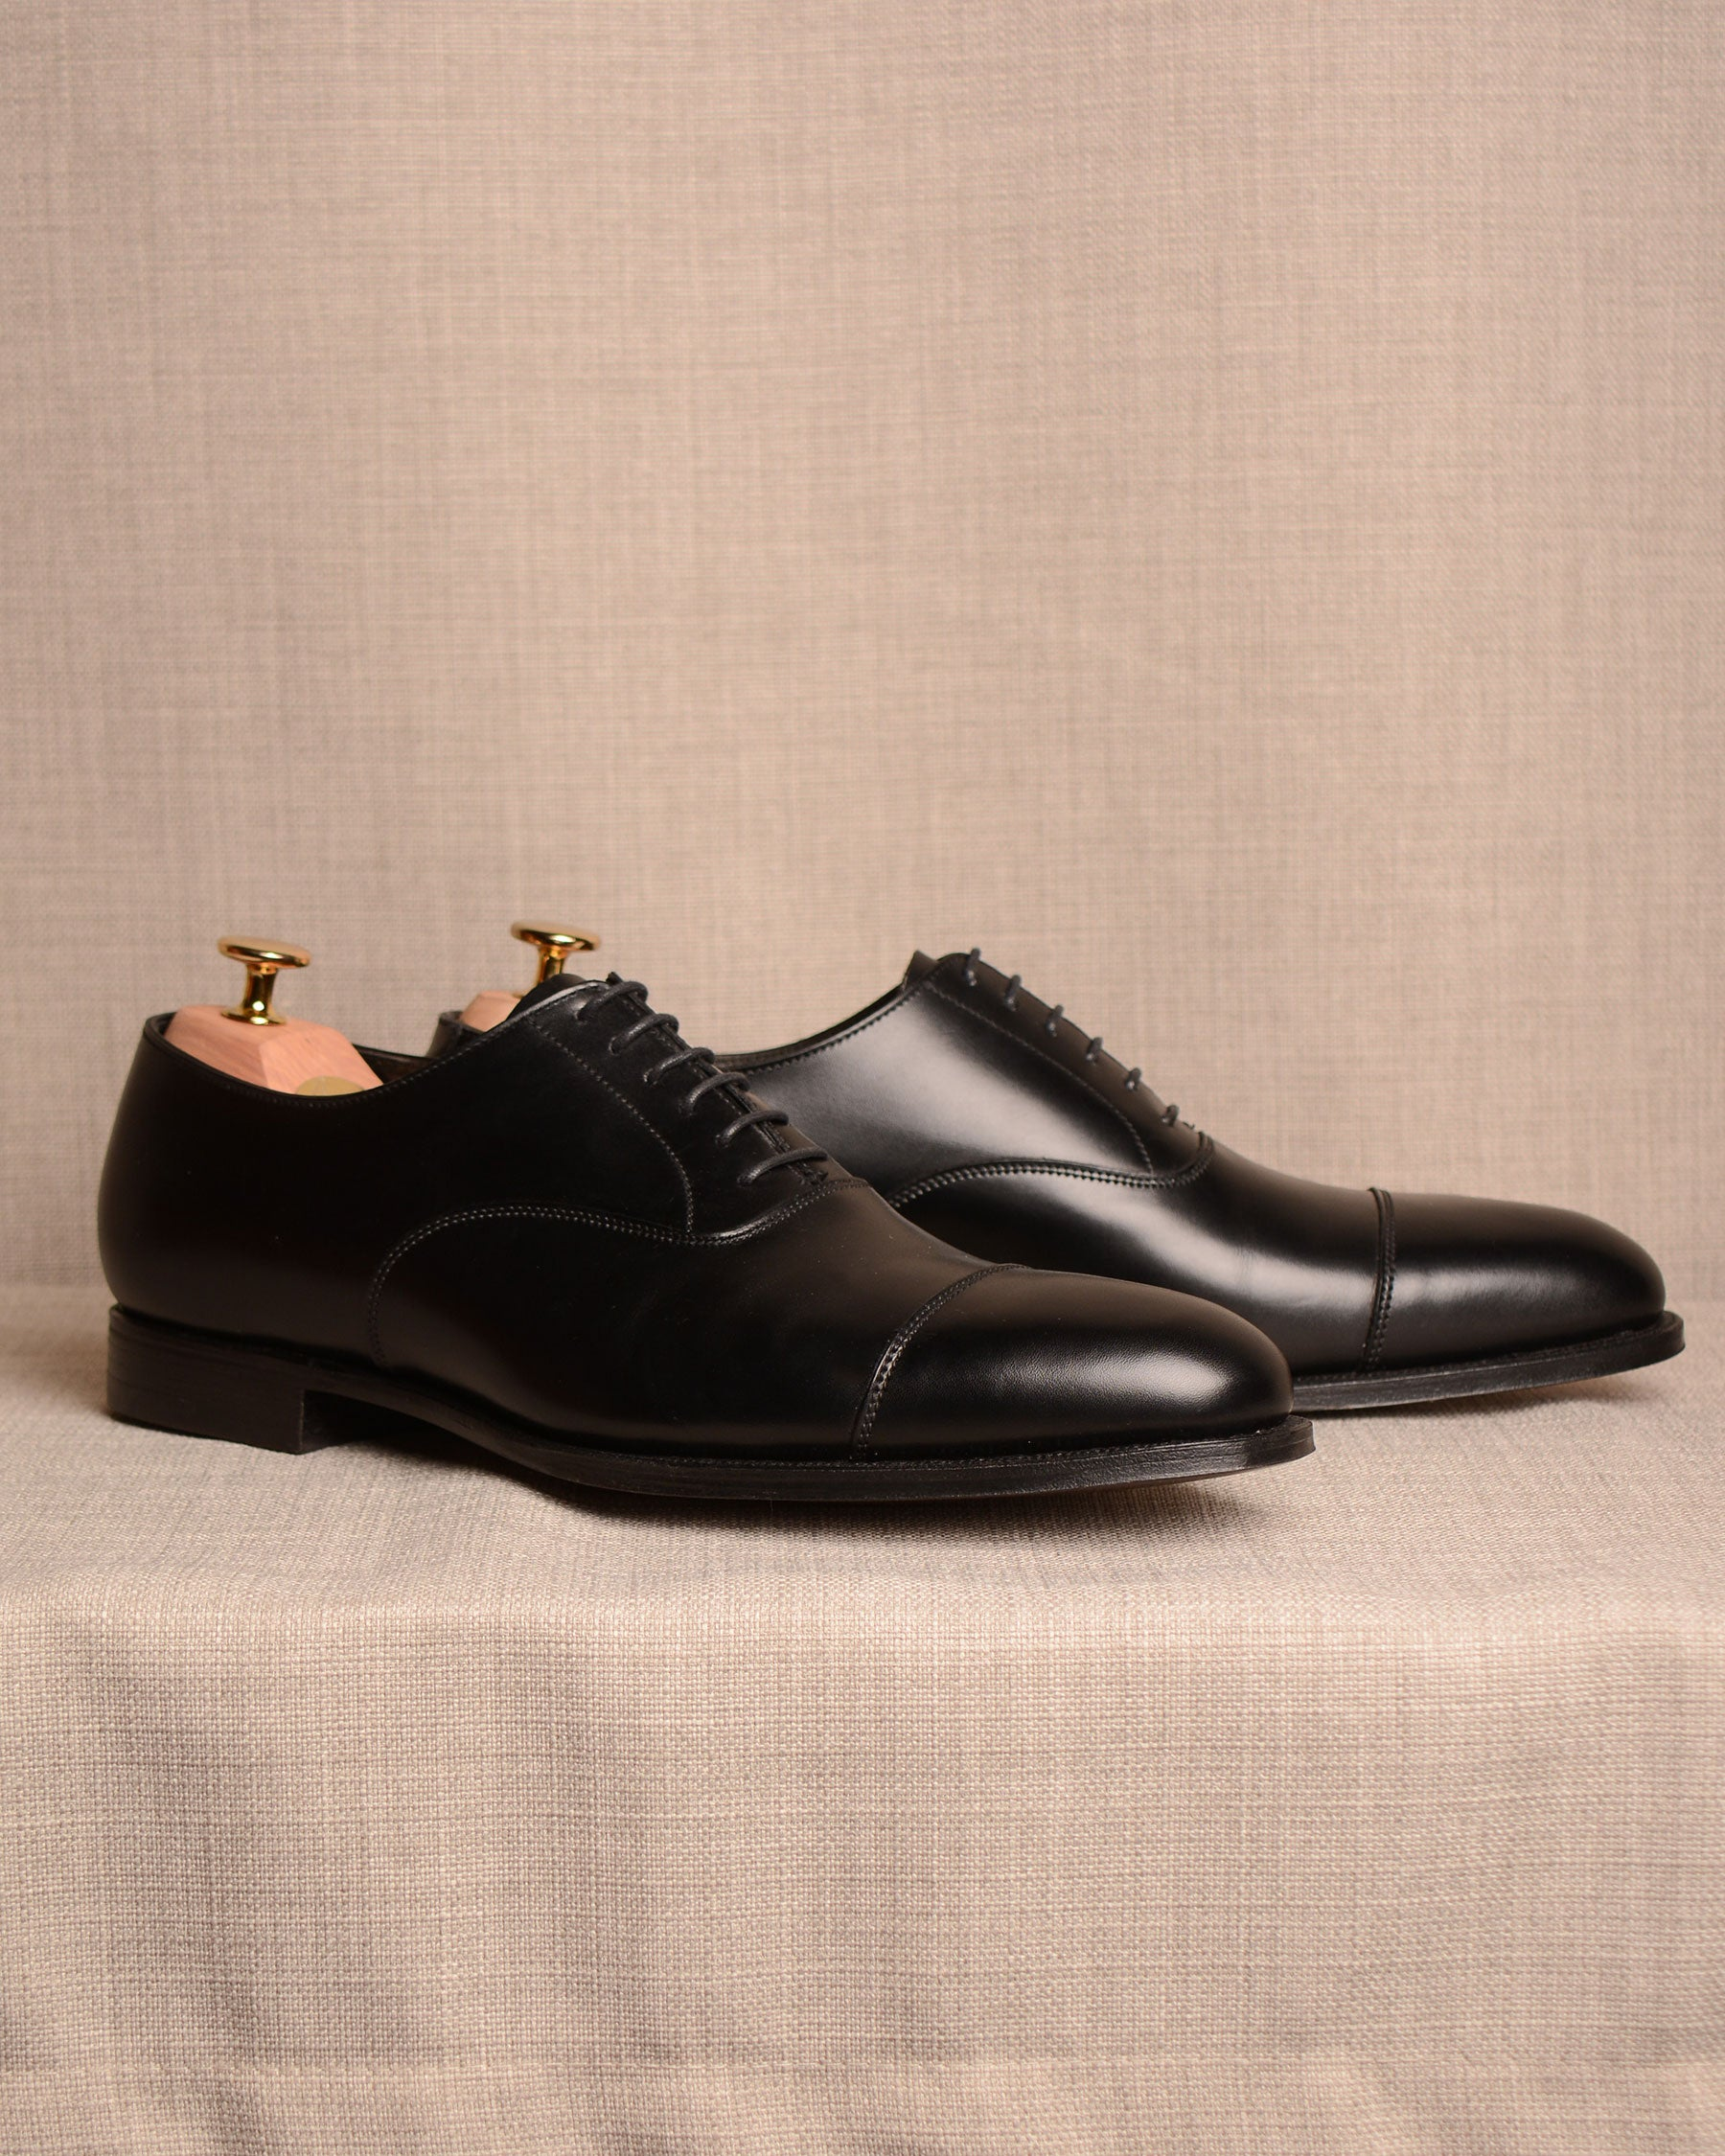 Crockett & Jones - Lonsdale Black